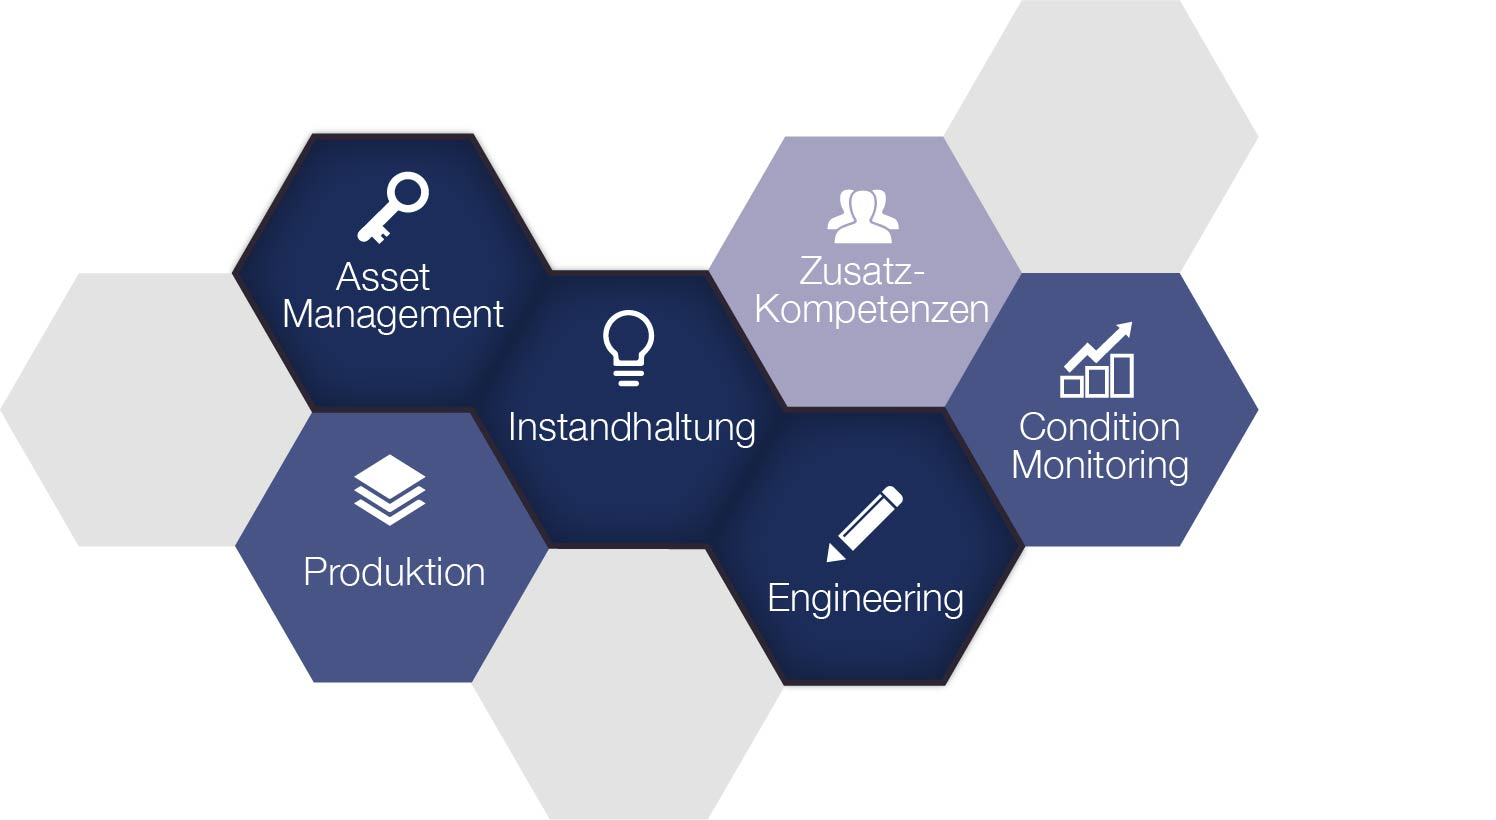 System for Excellence, S4E, dankl, MCP; Waben, Instandhaltung verbessern, Asset Management, Produktion, Engineering, Condition Monitoring, Instandhaltung Kosten senken